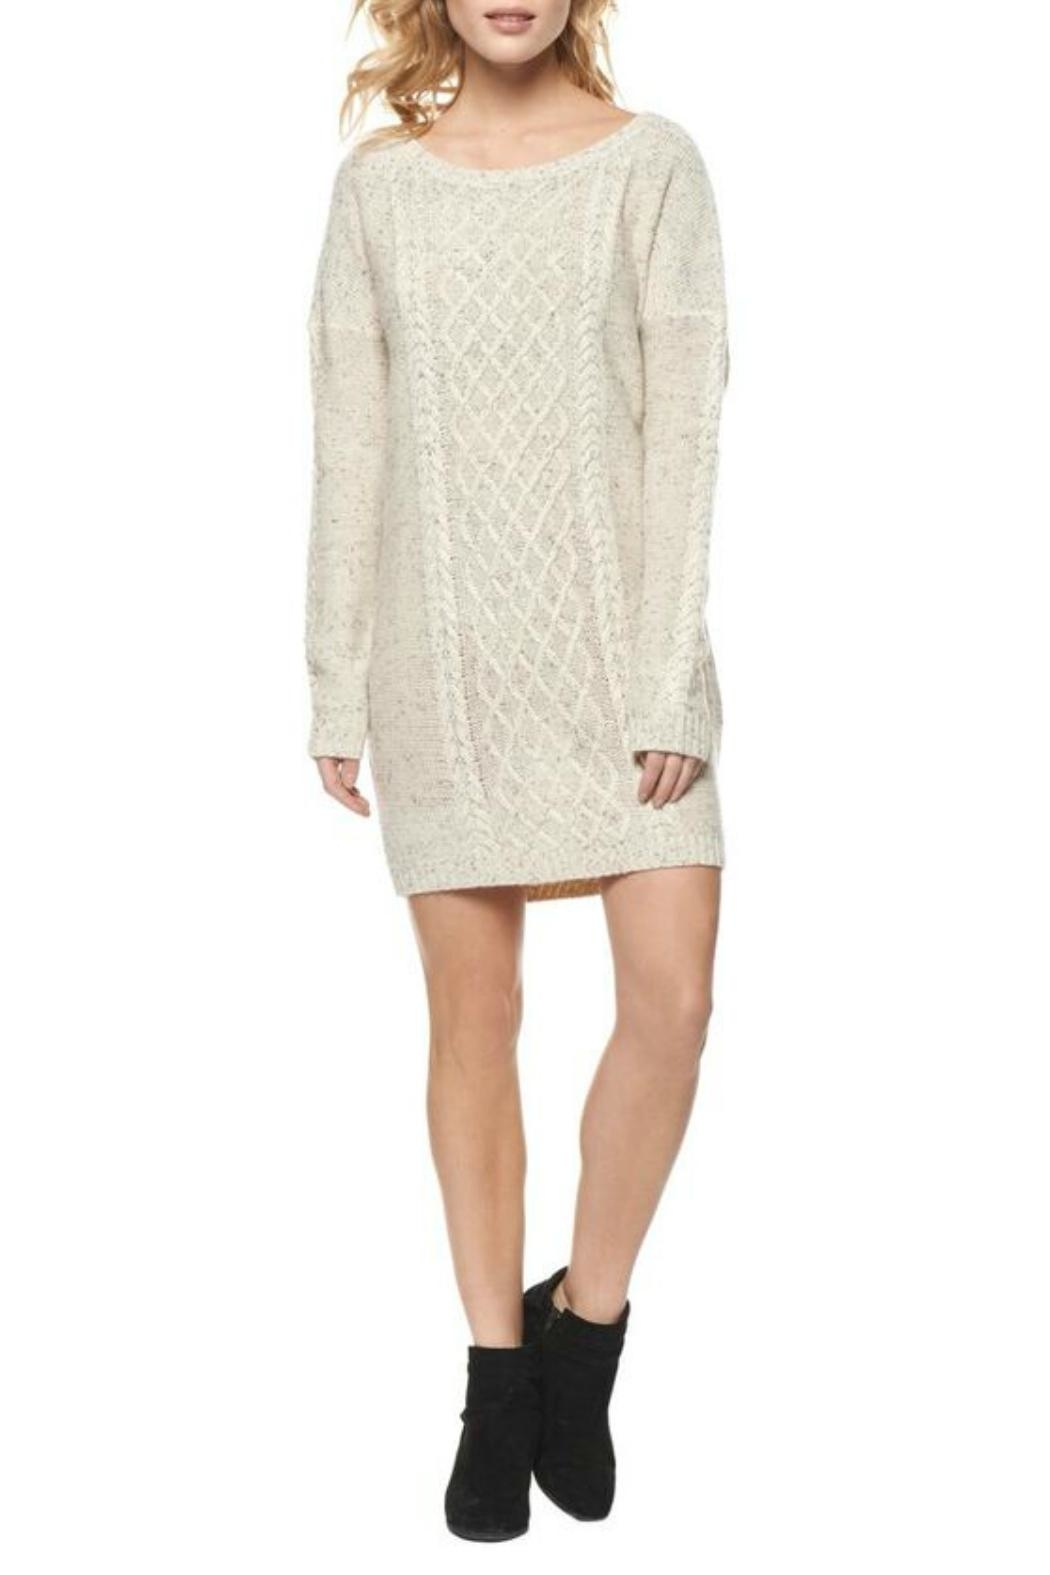 Dex Cable Knit Sweater Dress From New Jersey By Ocean Grove Trading